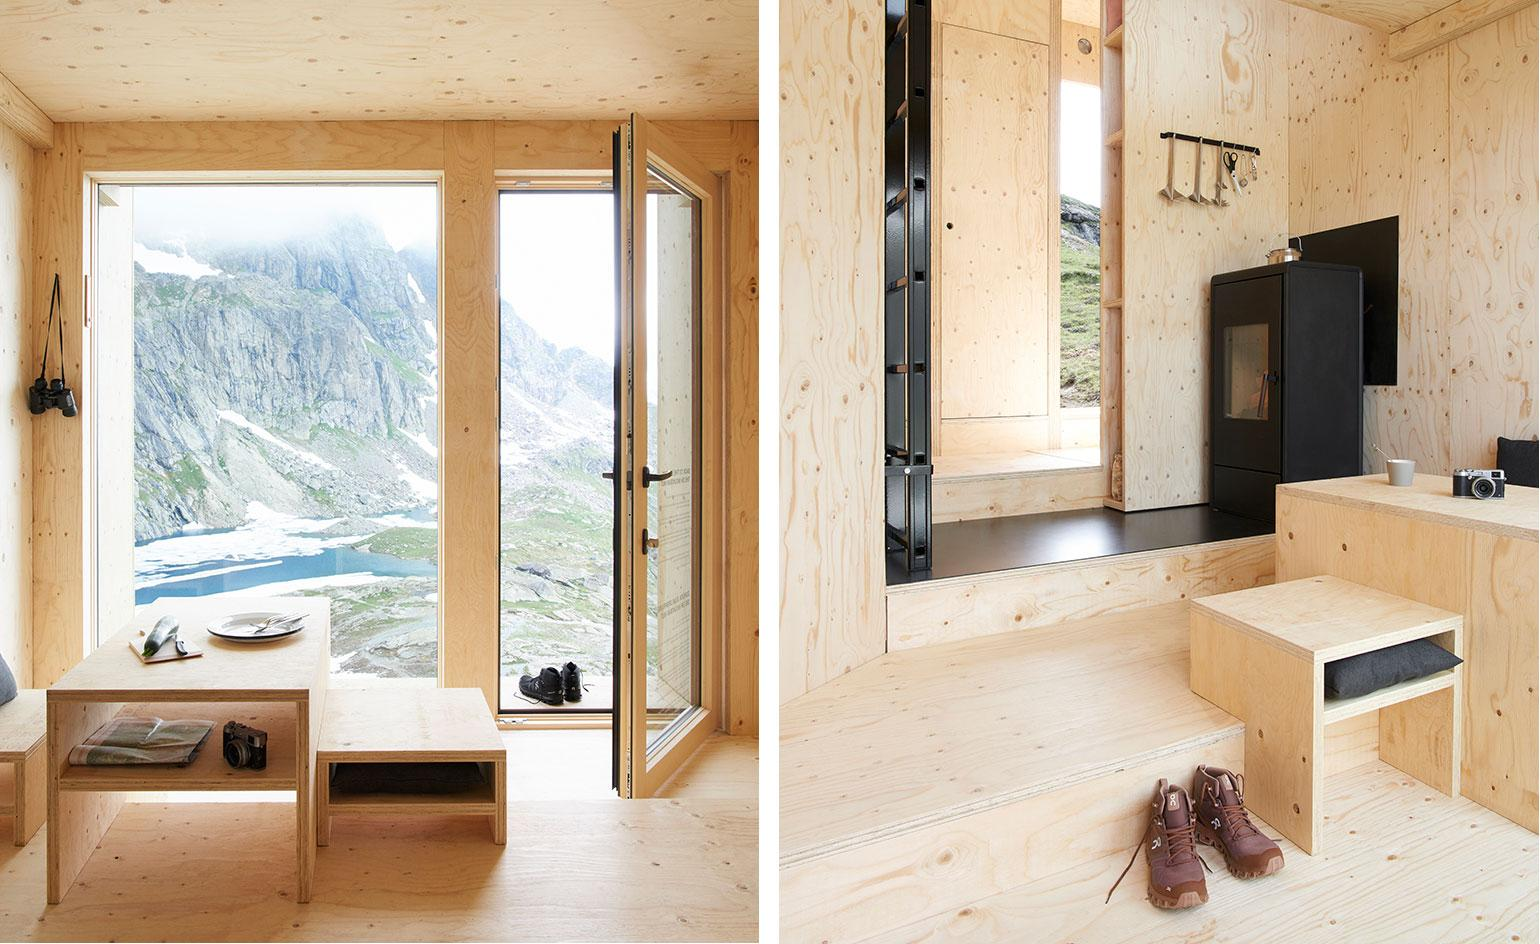 High-tech running brand On touches the clouds with Engadin valley retreat